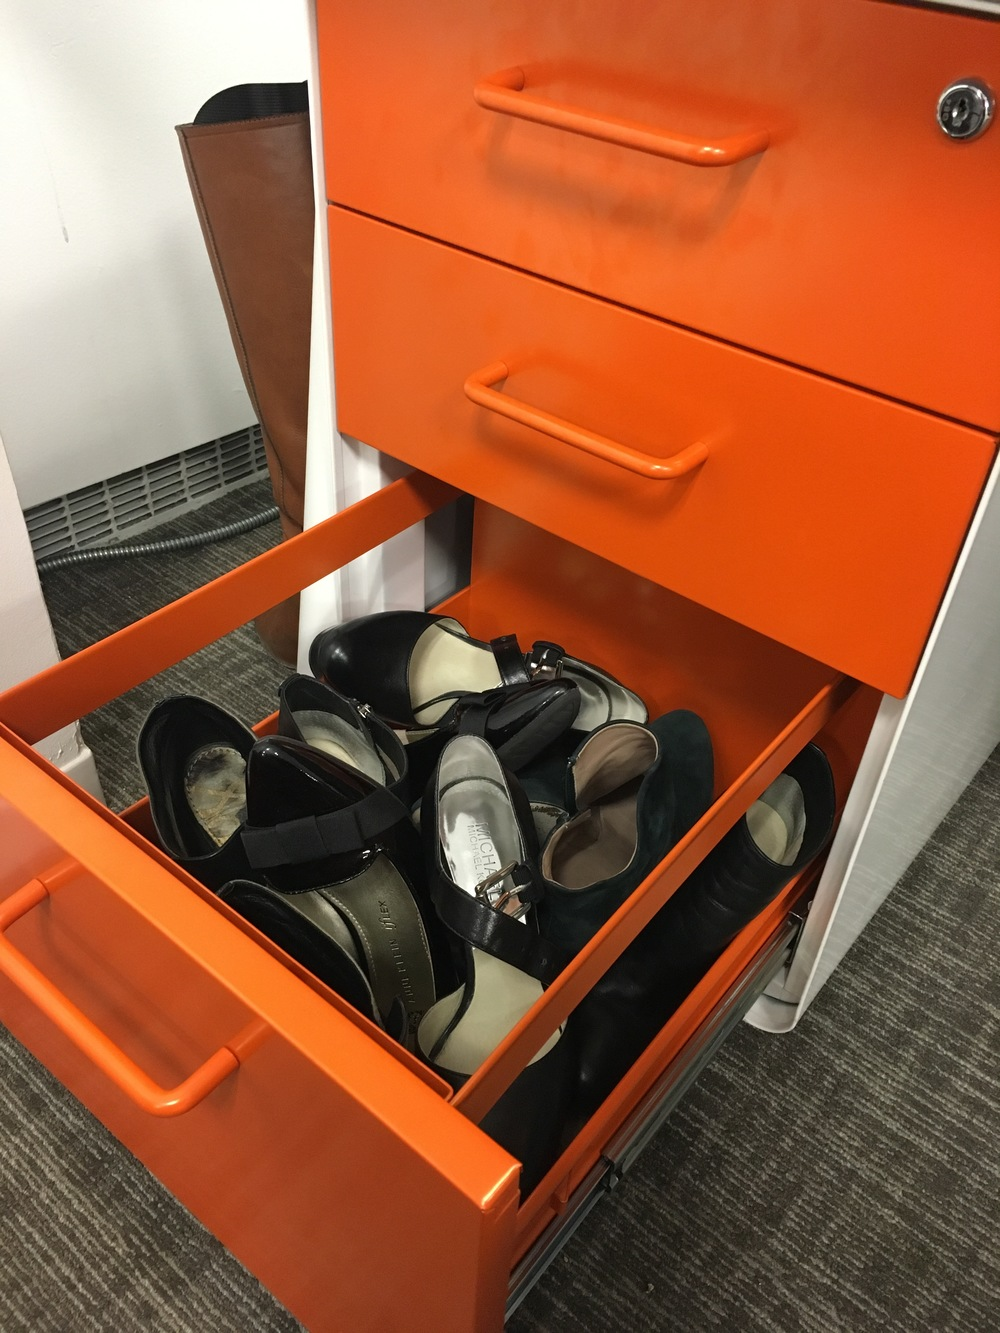 This is my bottom desk drawer at the uptown office. I wasn't lying about stowing away heels! Notice, boots poking around the corner.